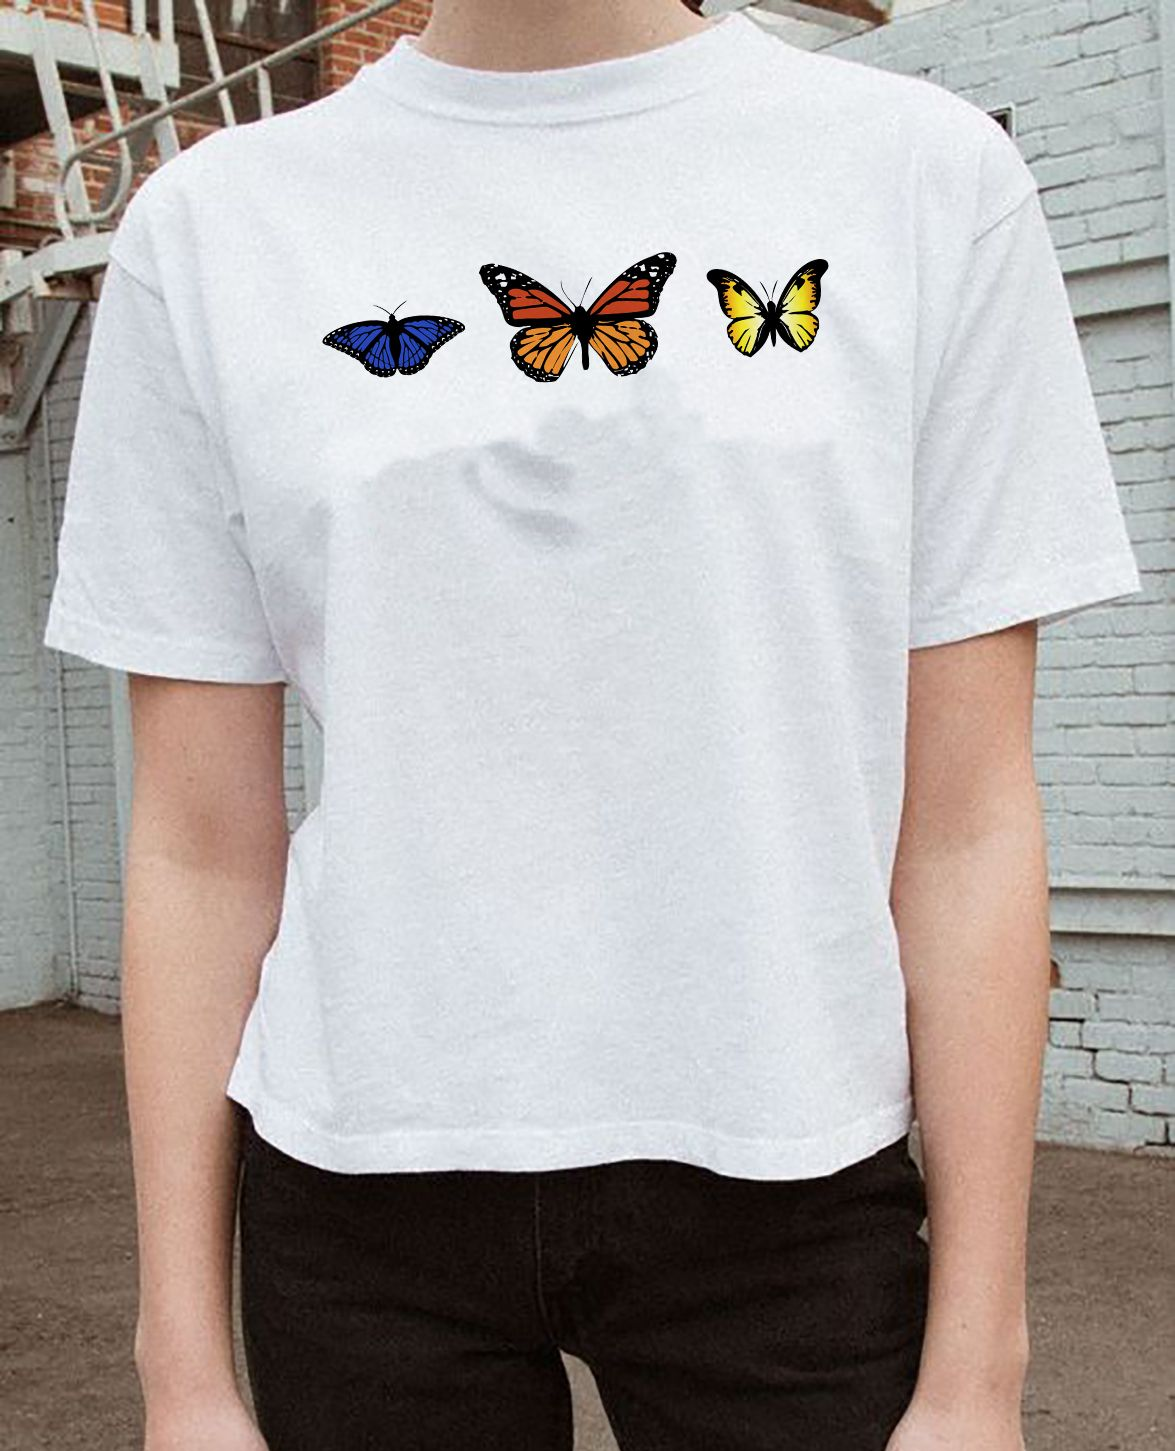 9564f5a2f Butterfly graphic t-shirt #graphictee #tshirt #butterflies | clothes ...